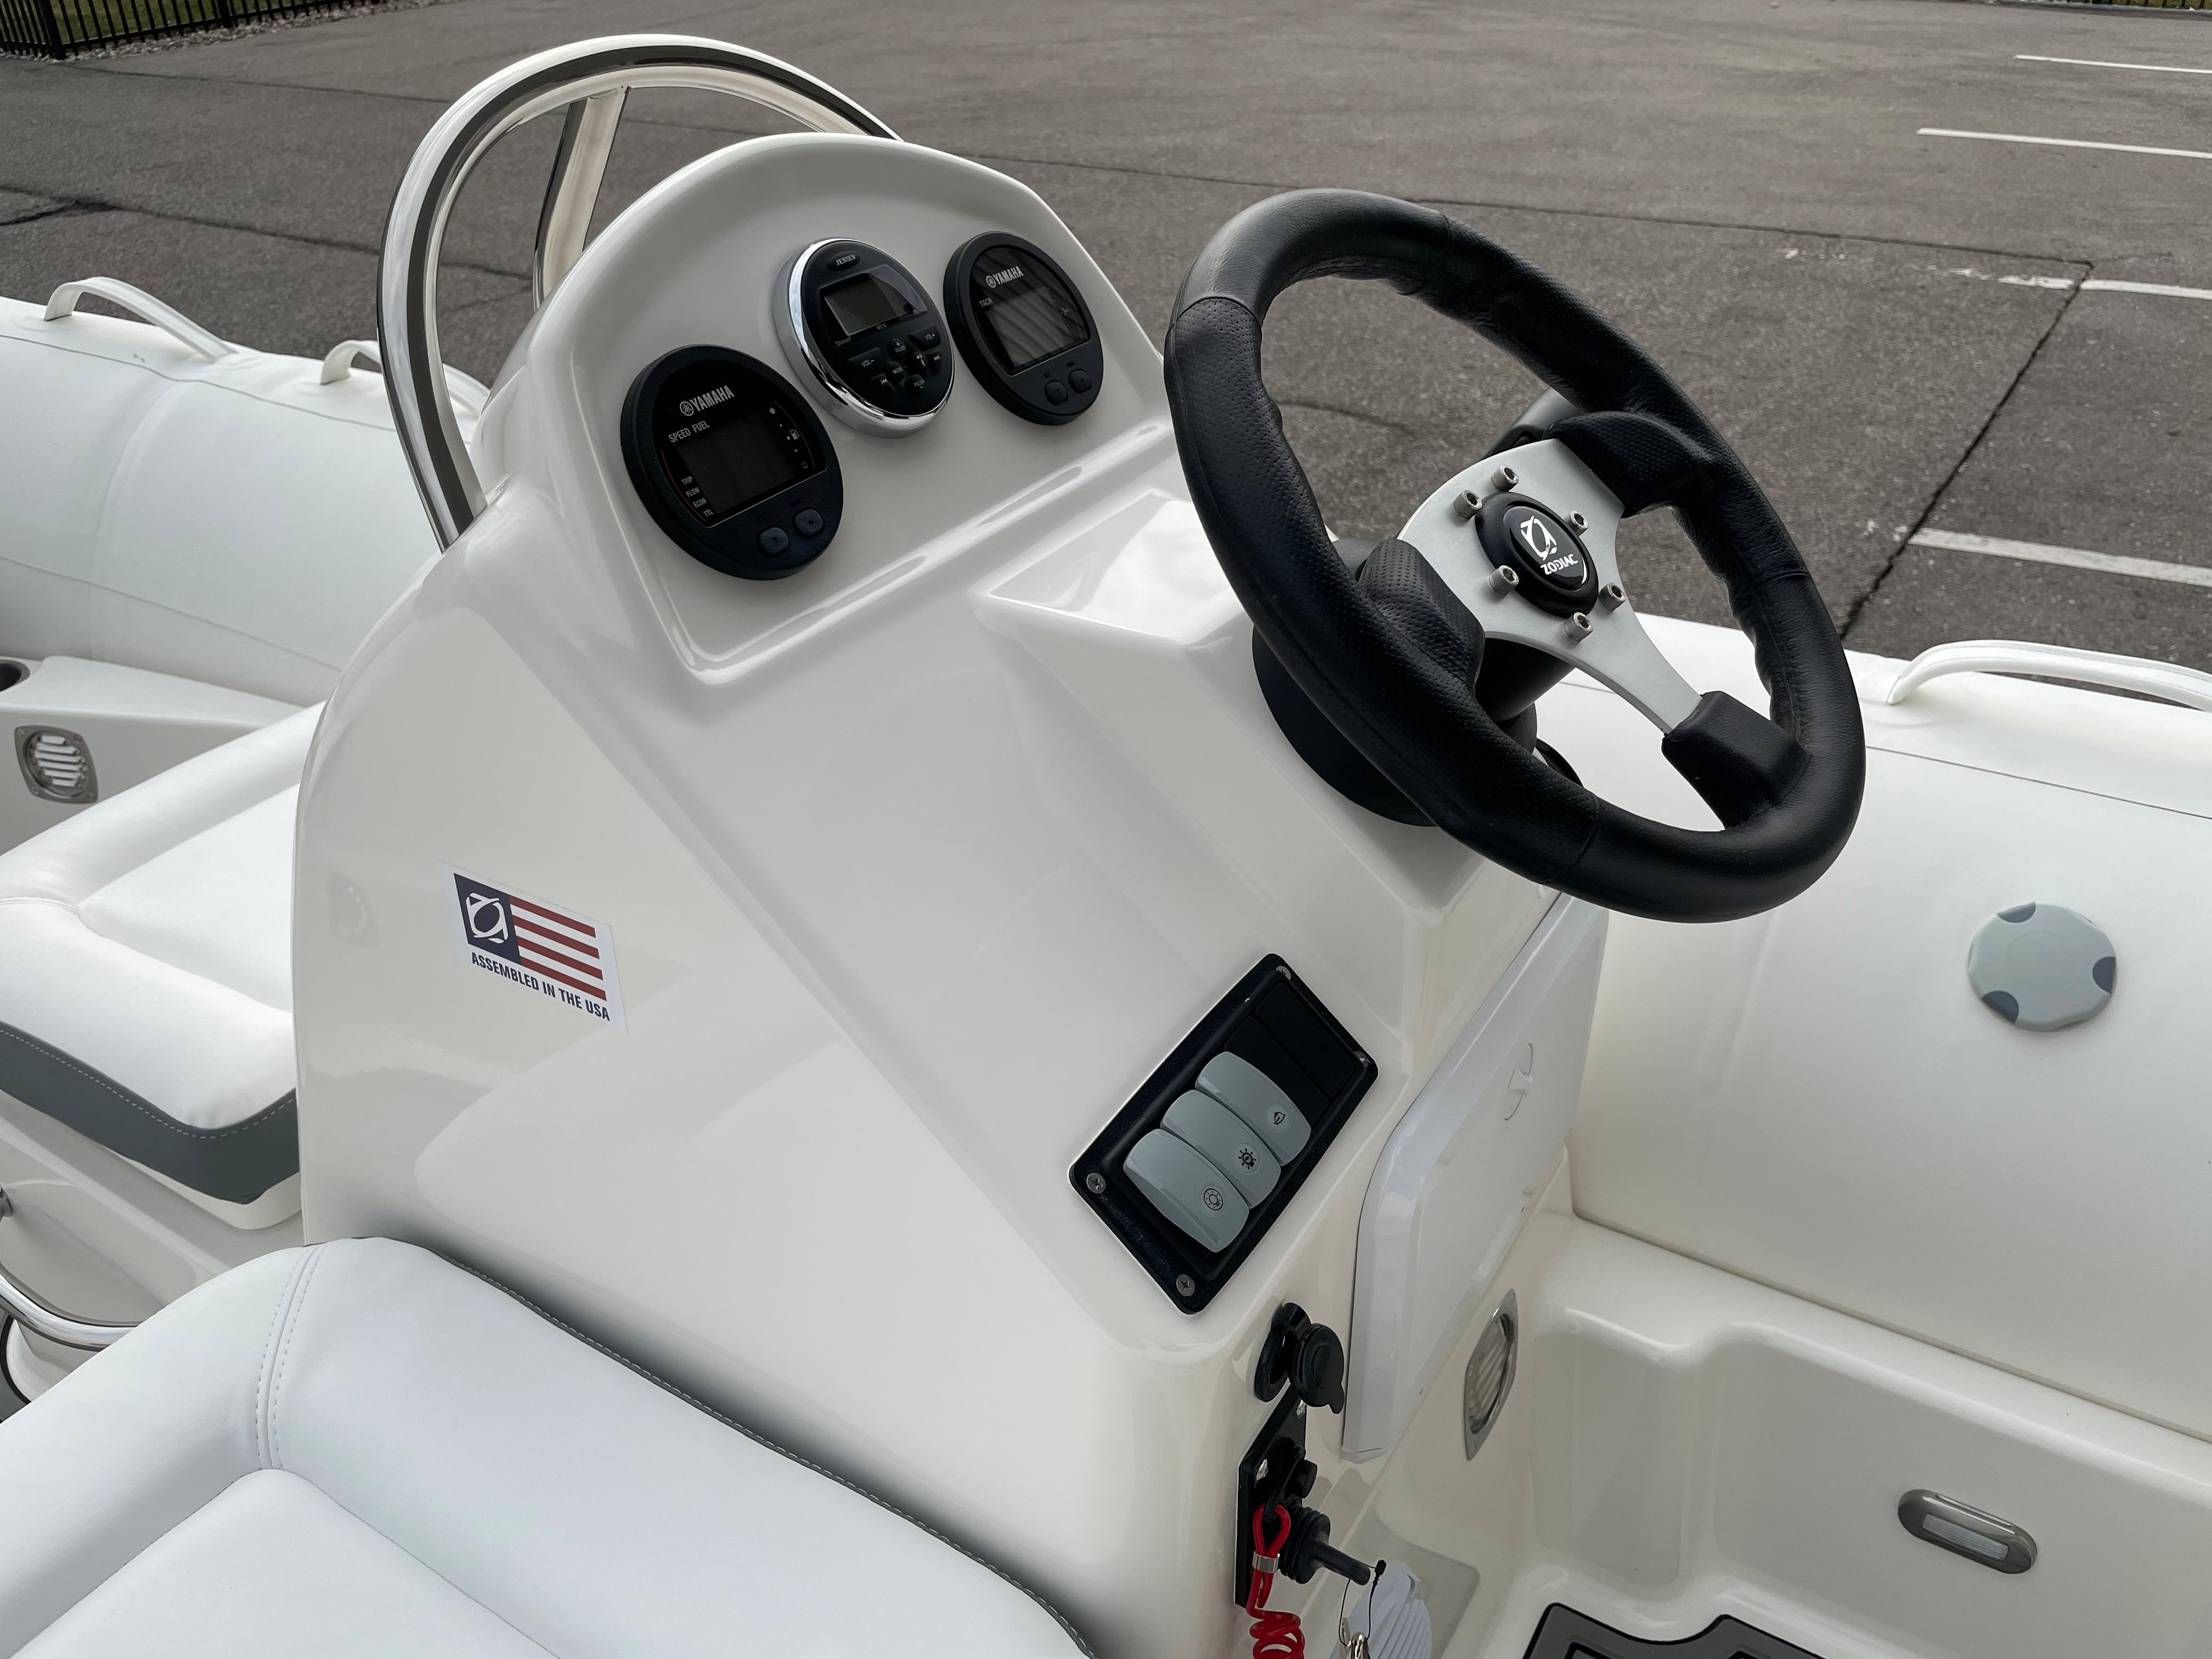 2022 Zodiac Yachtline 490 Deluxe NEO GL Edition 90hp On Order, Image 15